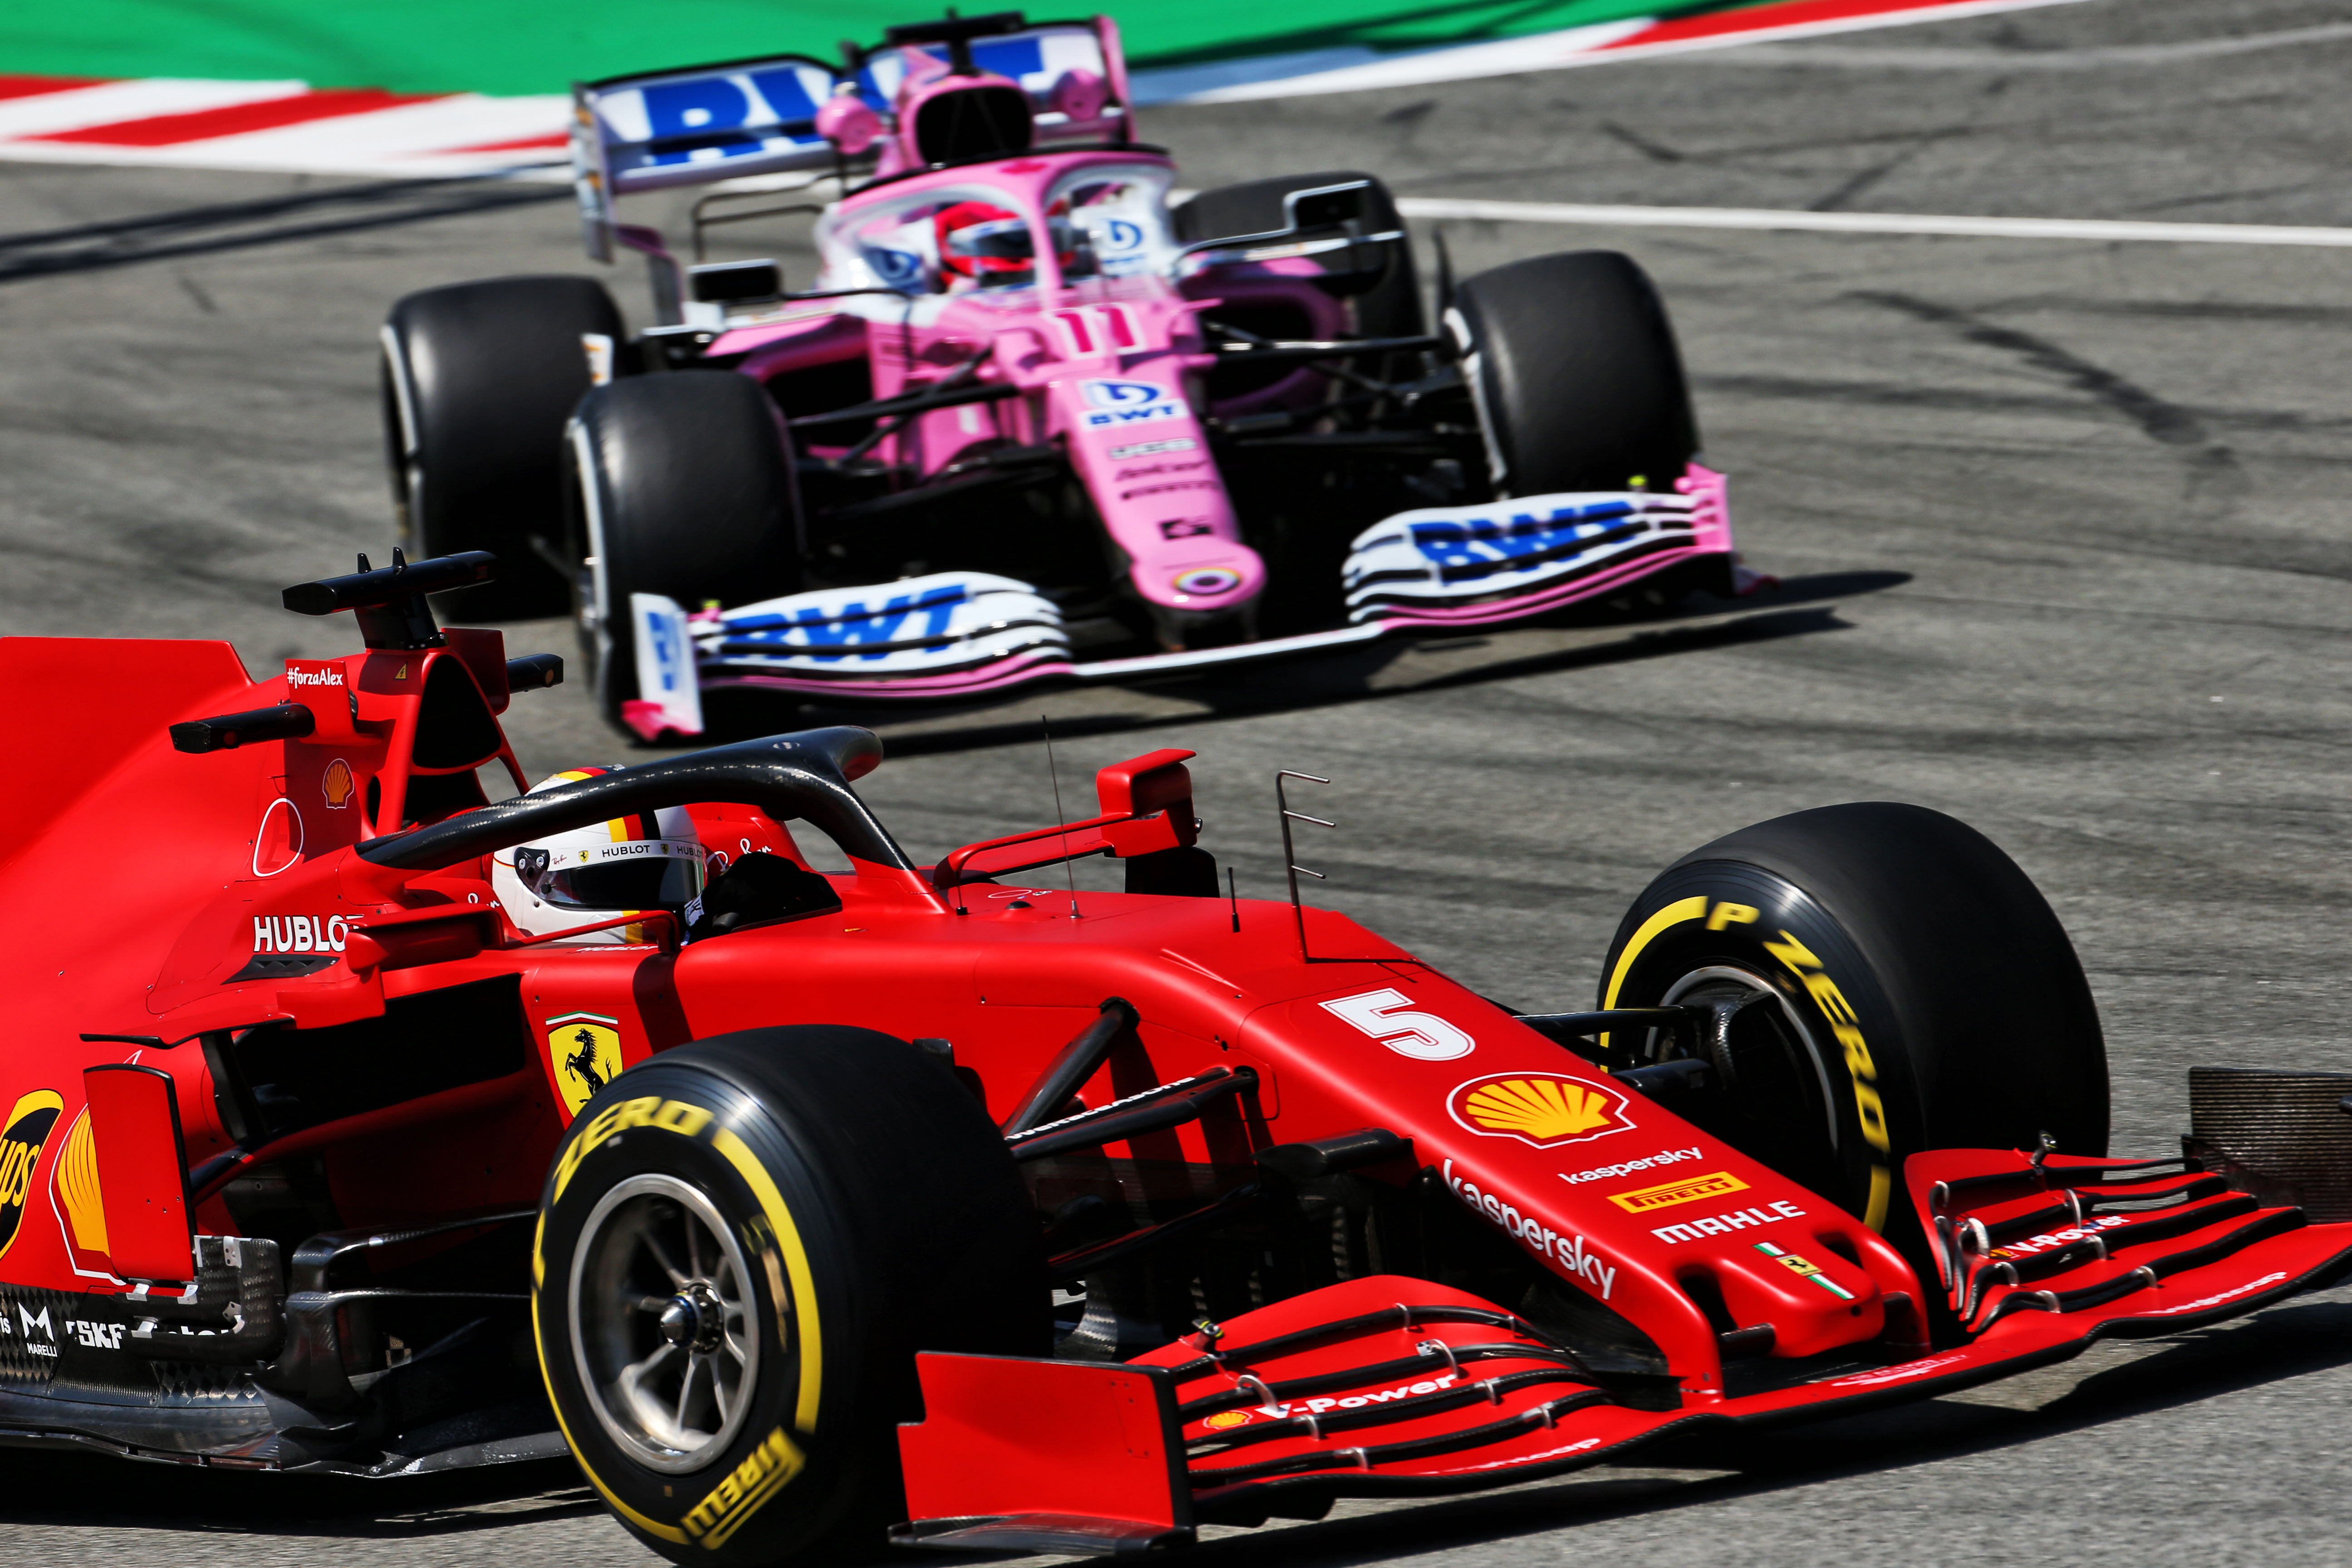 Motor Racing Formula One World Championship Spanish Grand Prix Practice Day Barcelona, Spain